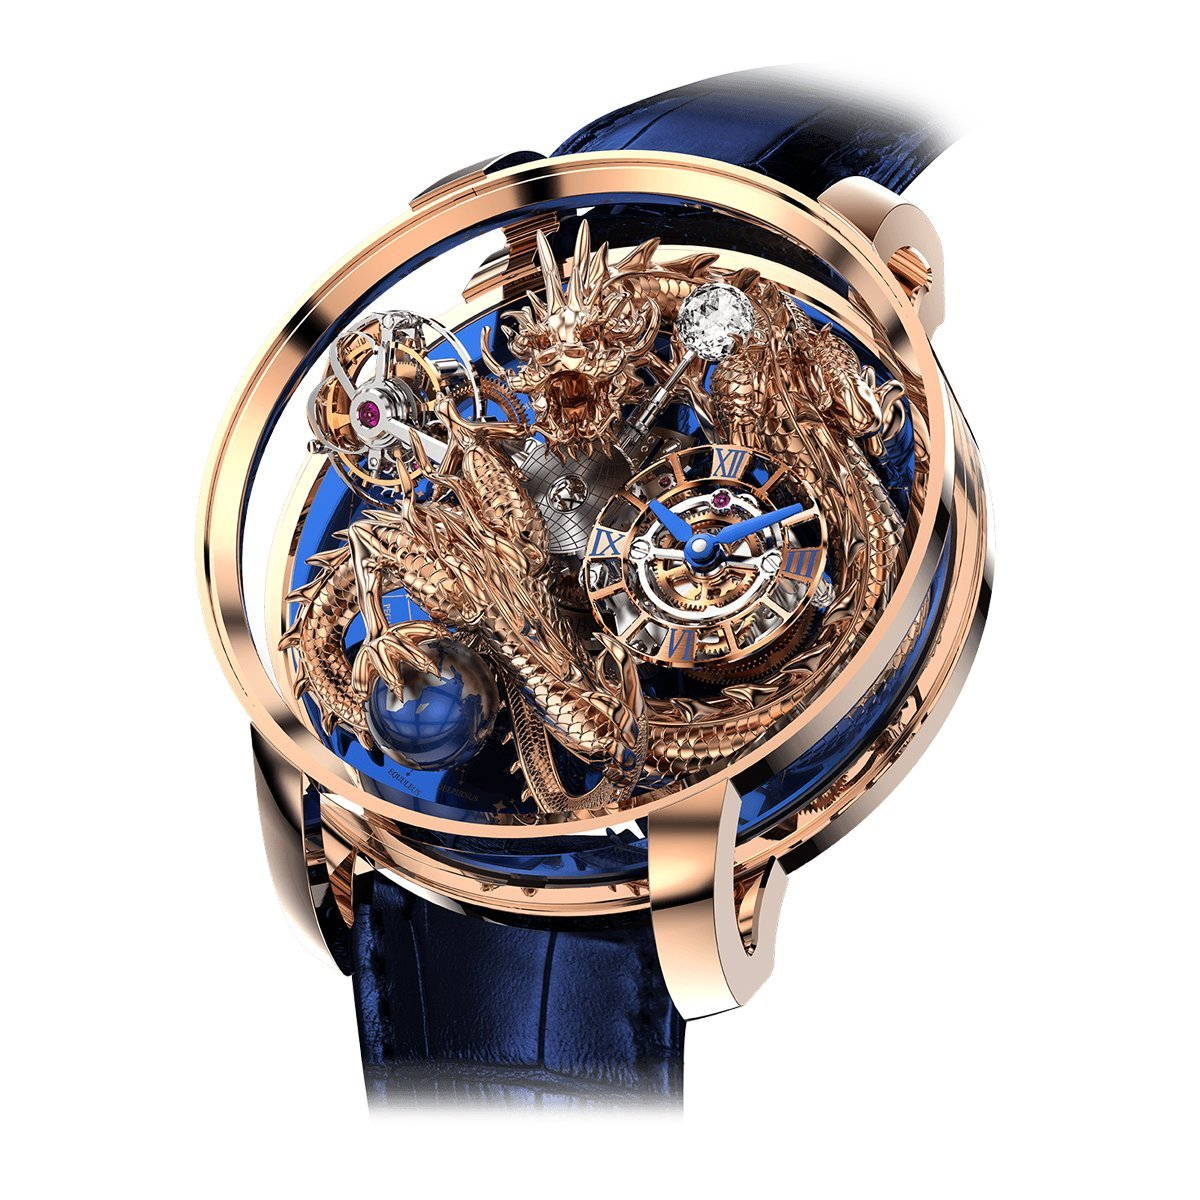 Jacob & Co. Astronomia Art Dragon Rose Gold - Watches & Crystals